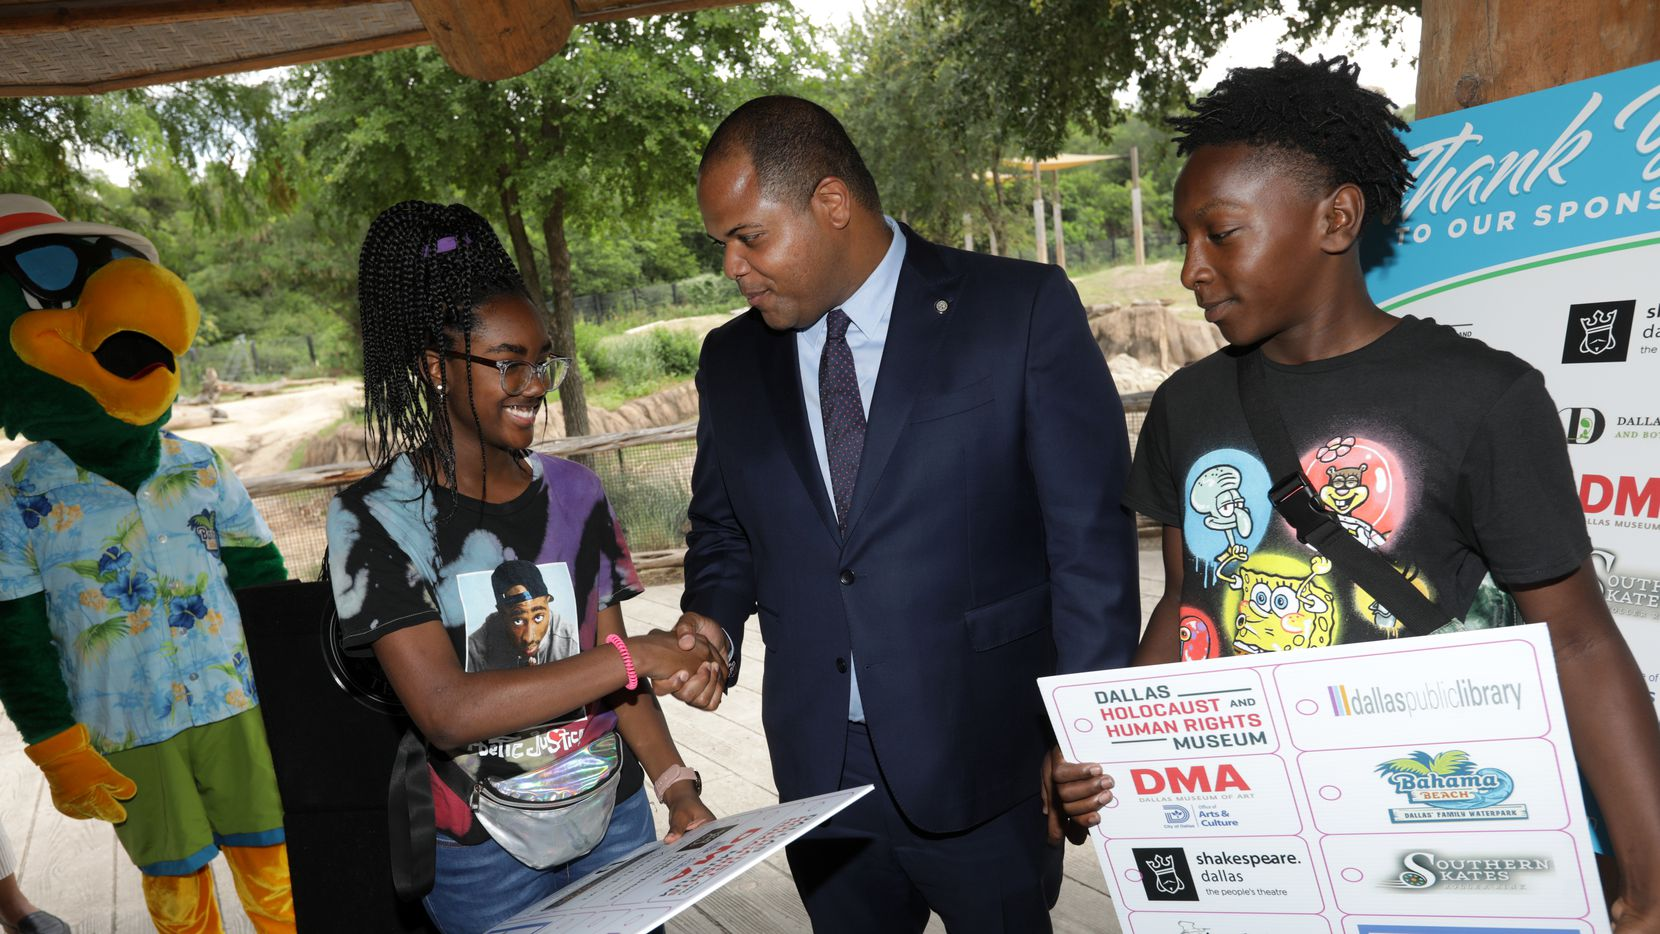 Mayor Eric Johnson, center, gives 14-year-old Kamryn Jones, left, and 13-year-old Isaiah Wilson a Youth All-Access Pass during a press conference at the Dallas Zoo in Dallas, TX, on Jun. 29, 2021.  (Jason Janik/Special Contributor)